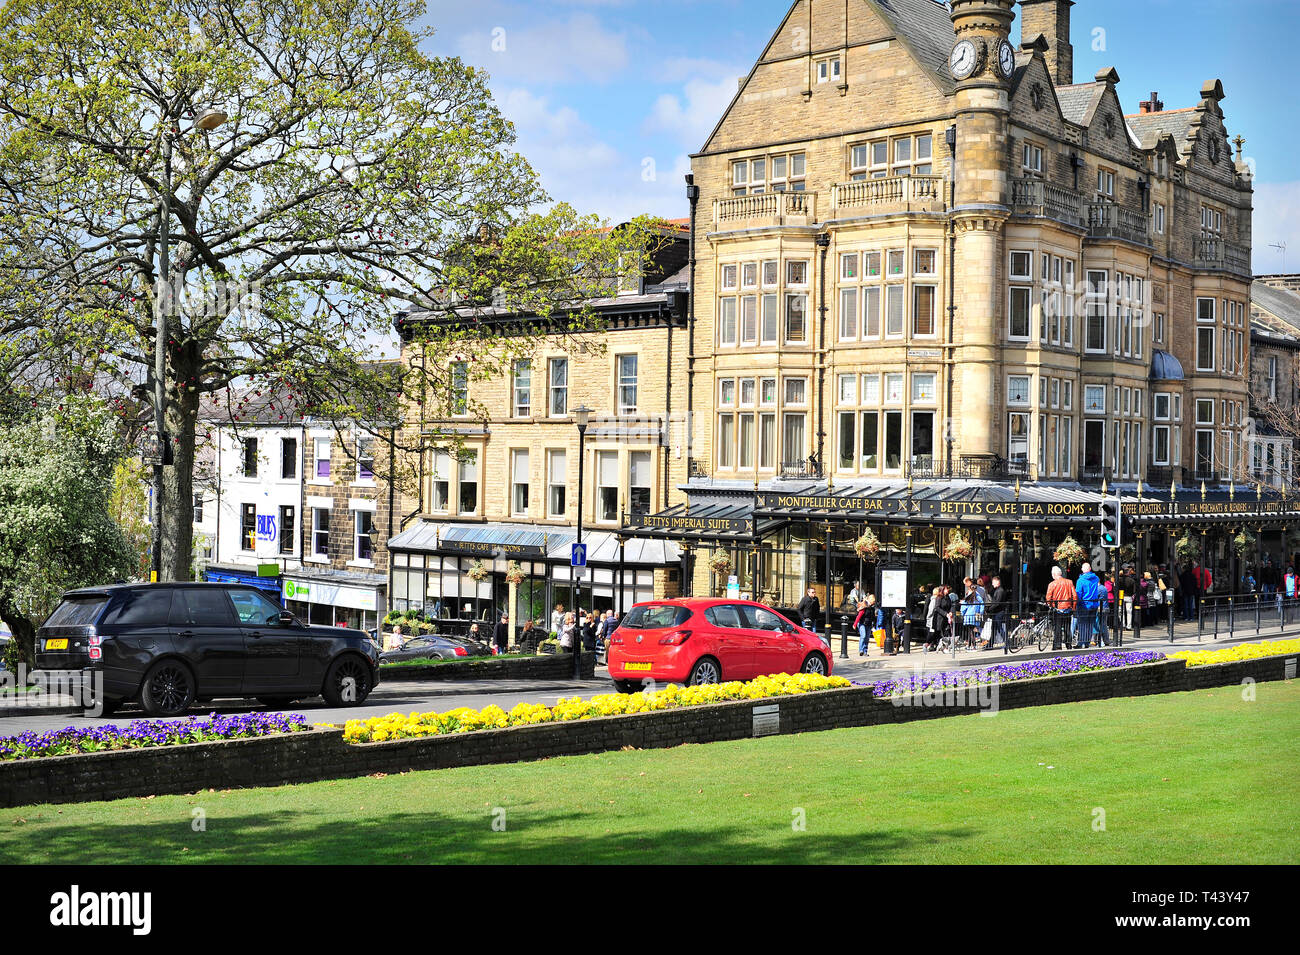 Harrogate North Yorkshire England UK - Stock Image